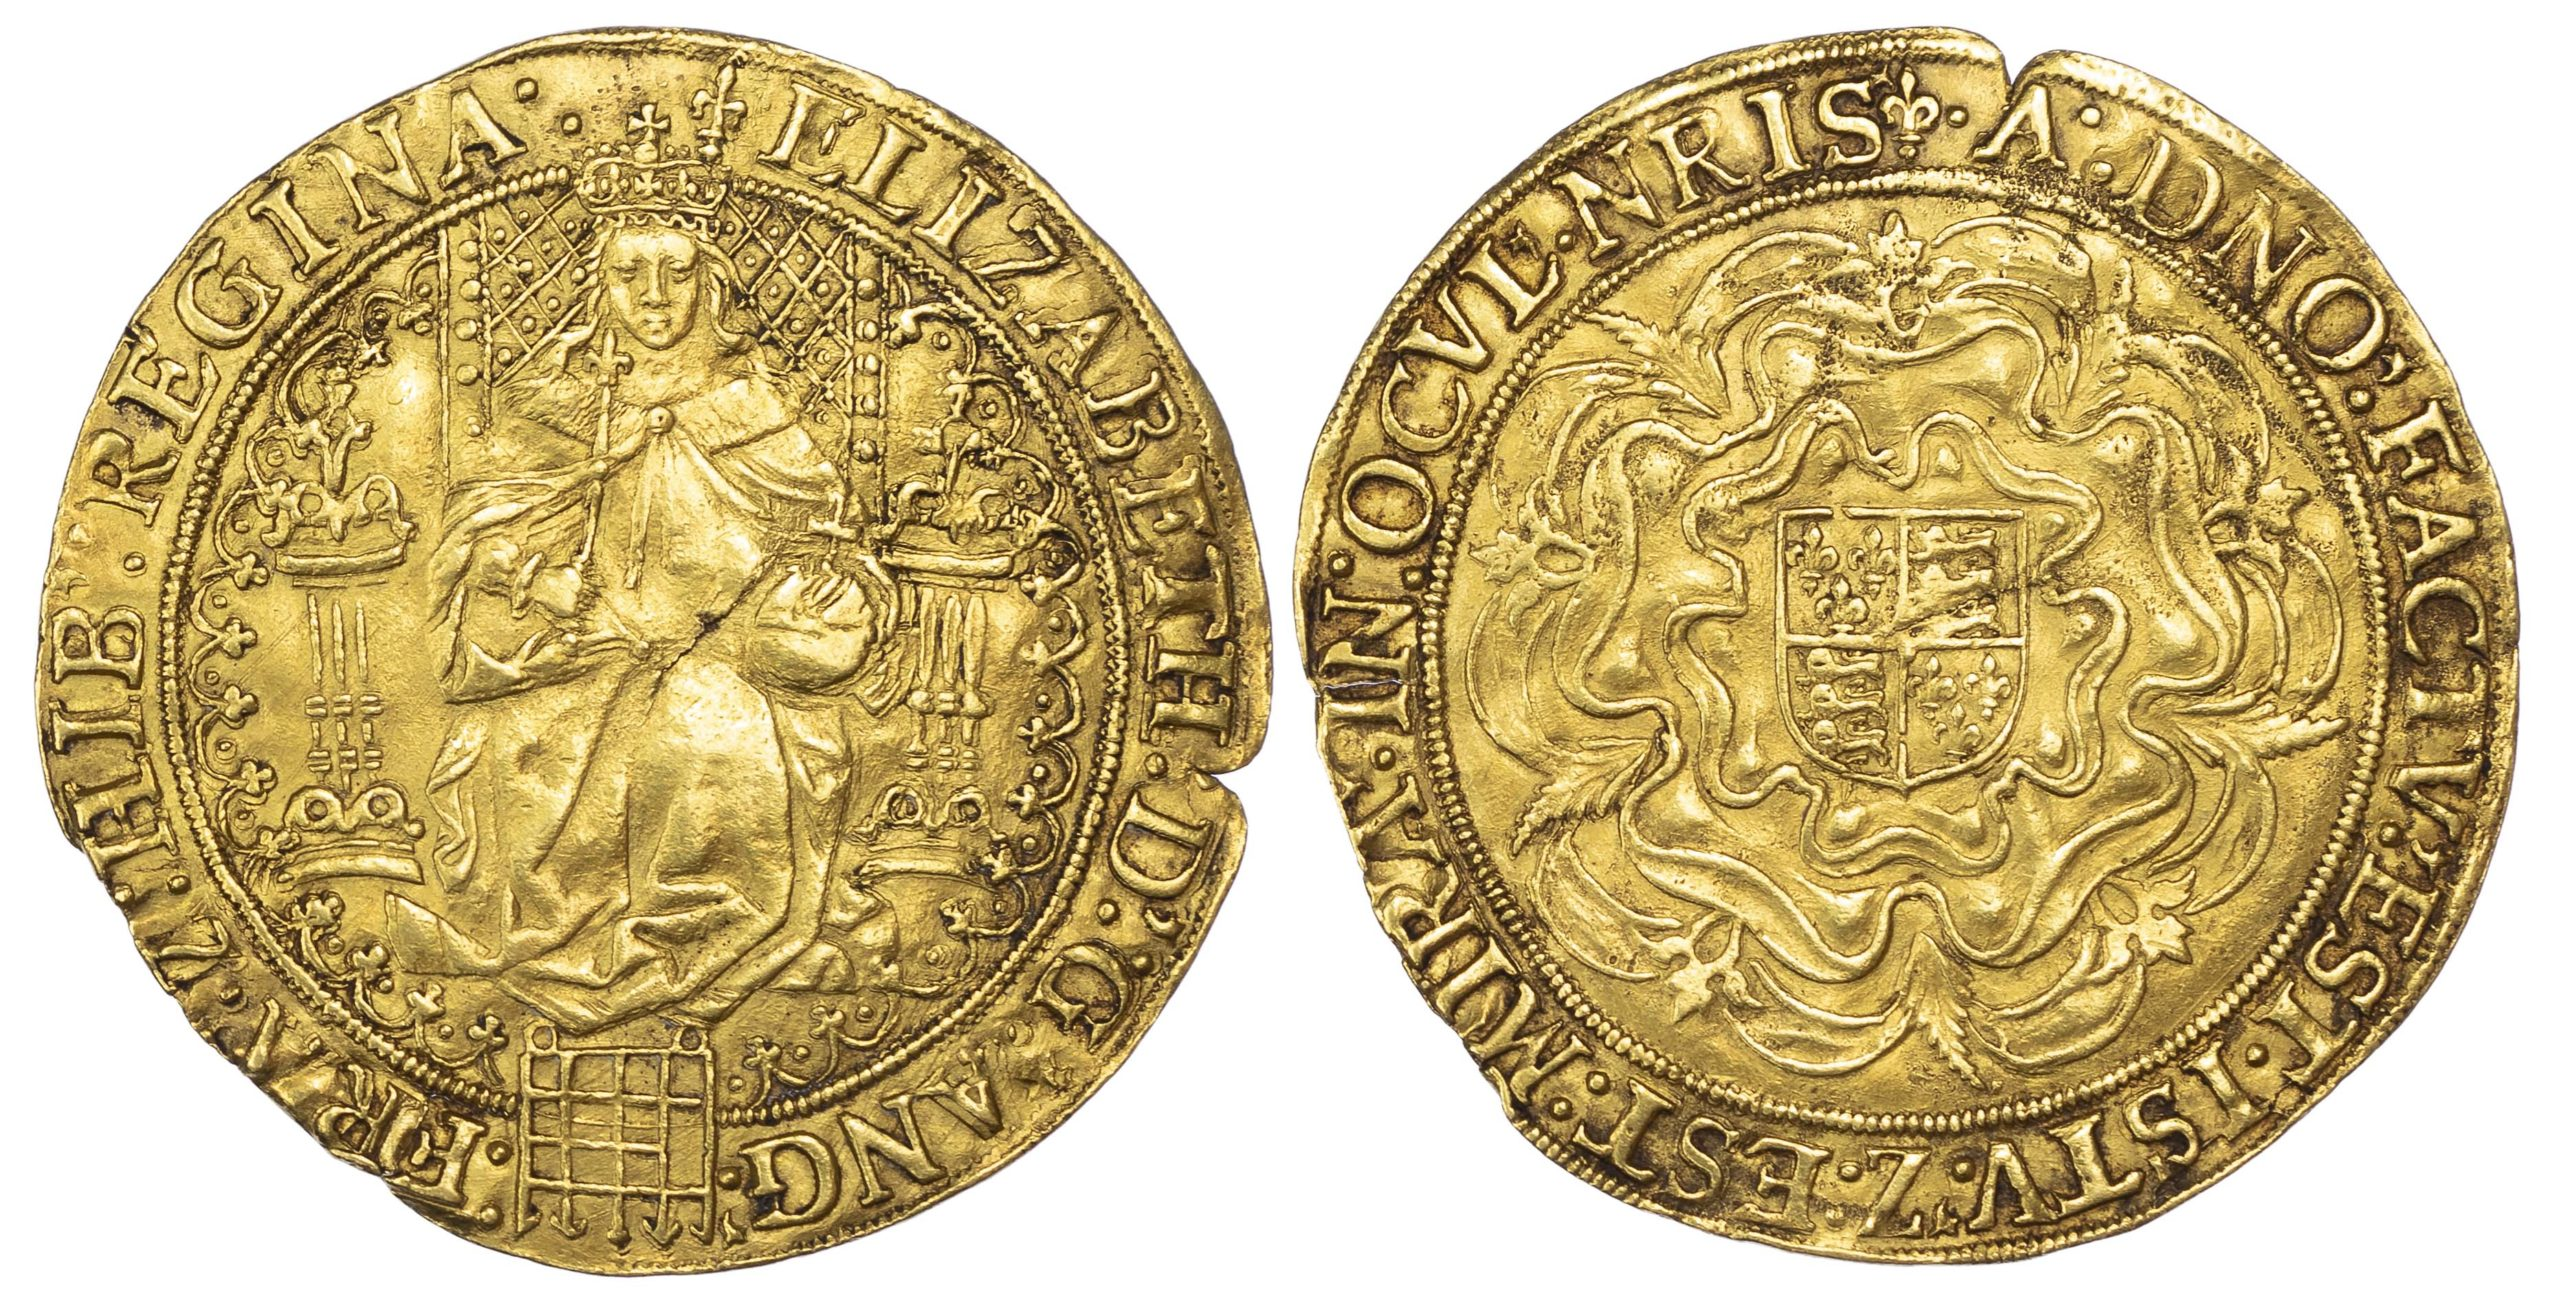 Elizabeth I (1558-1603), fine Gold Sovereign, first issue, mm. lis